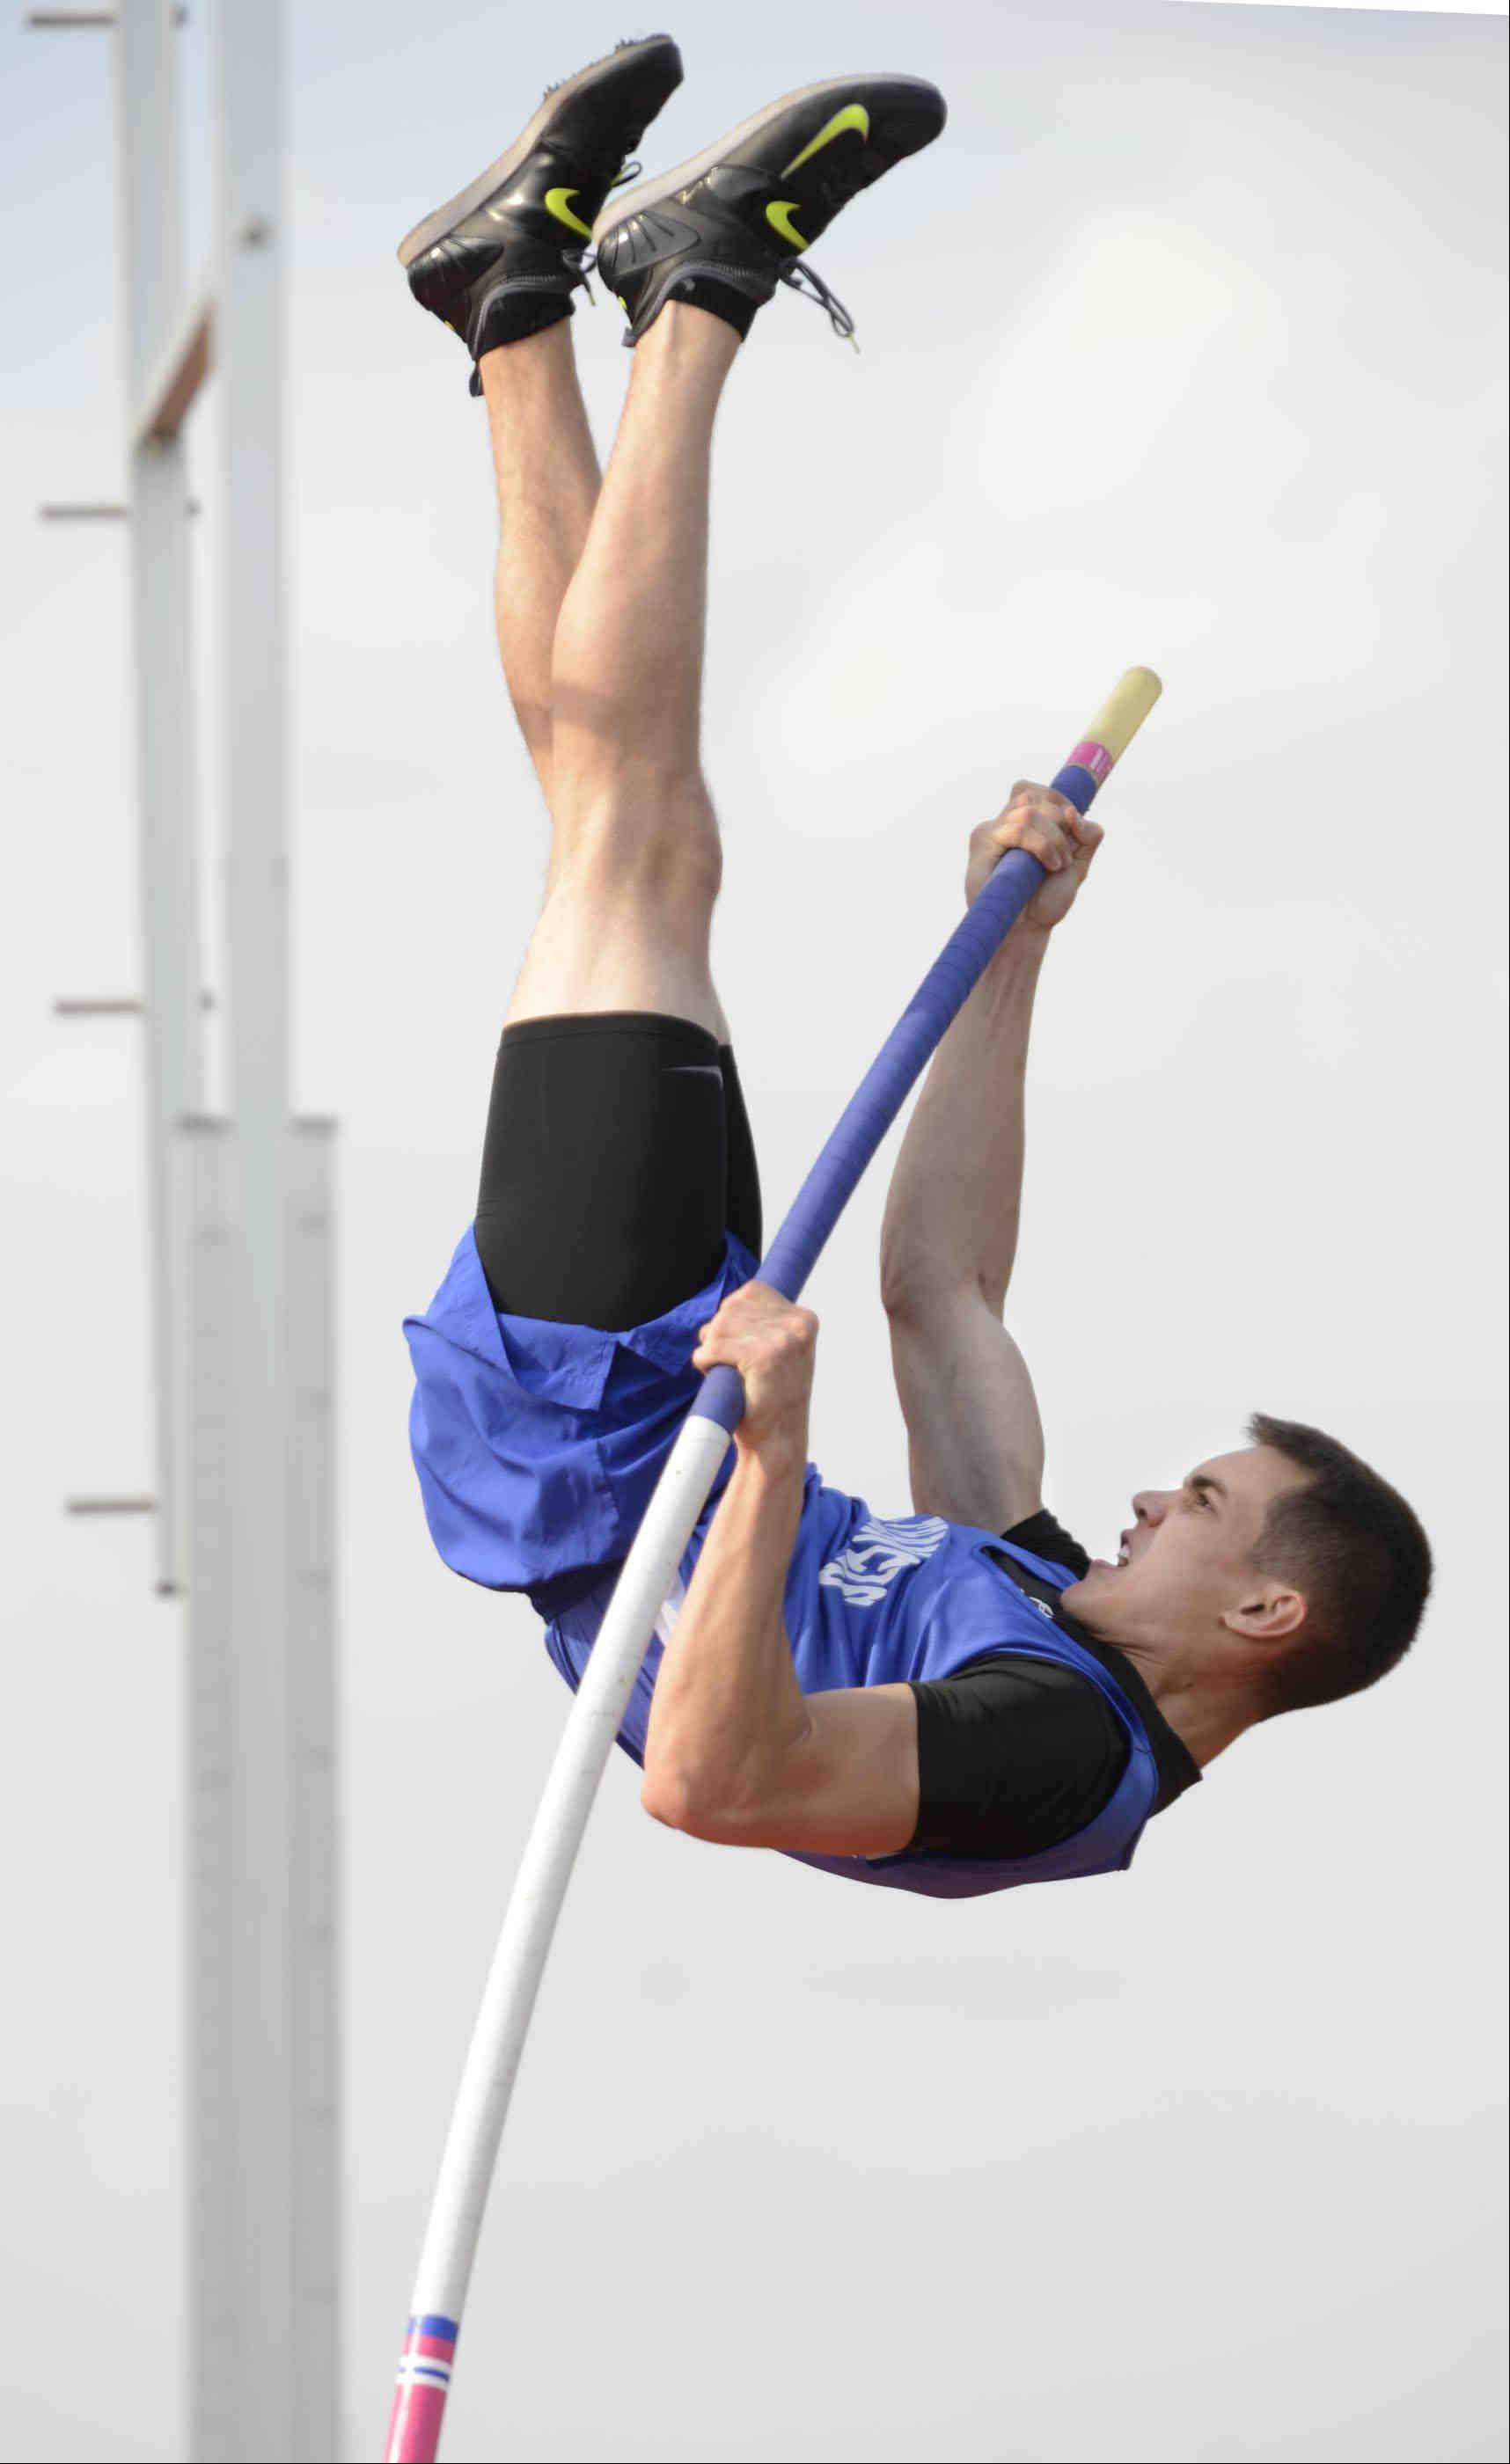 Wheaton St. Francis pole vaulter Micheal Wilson pulls his way to the bar Wednesday in Aurora.